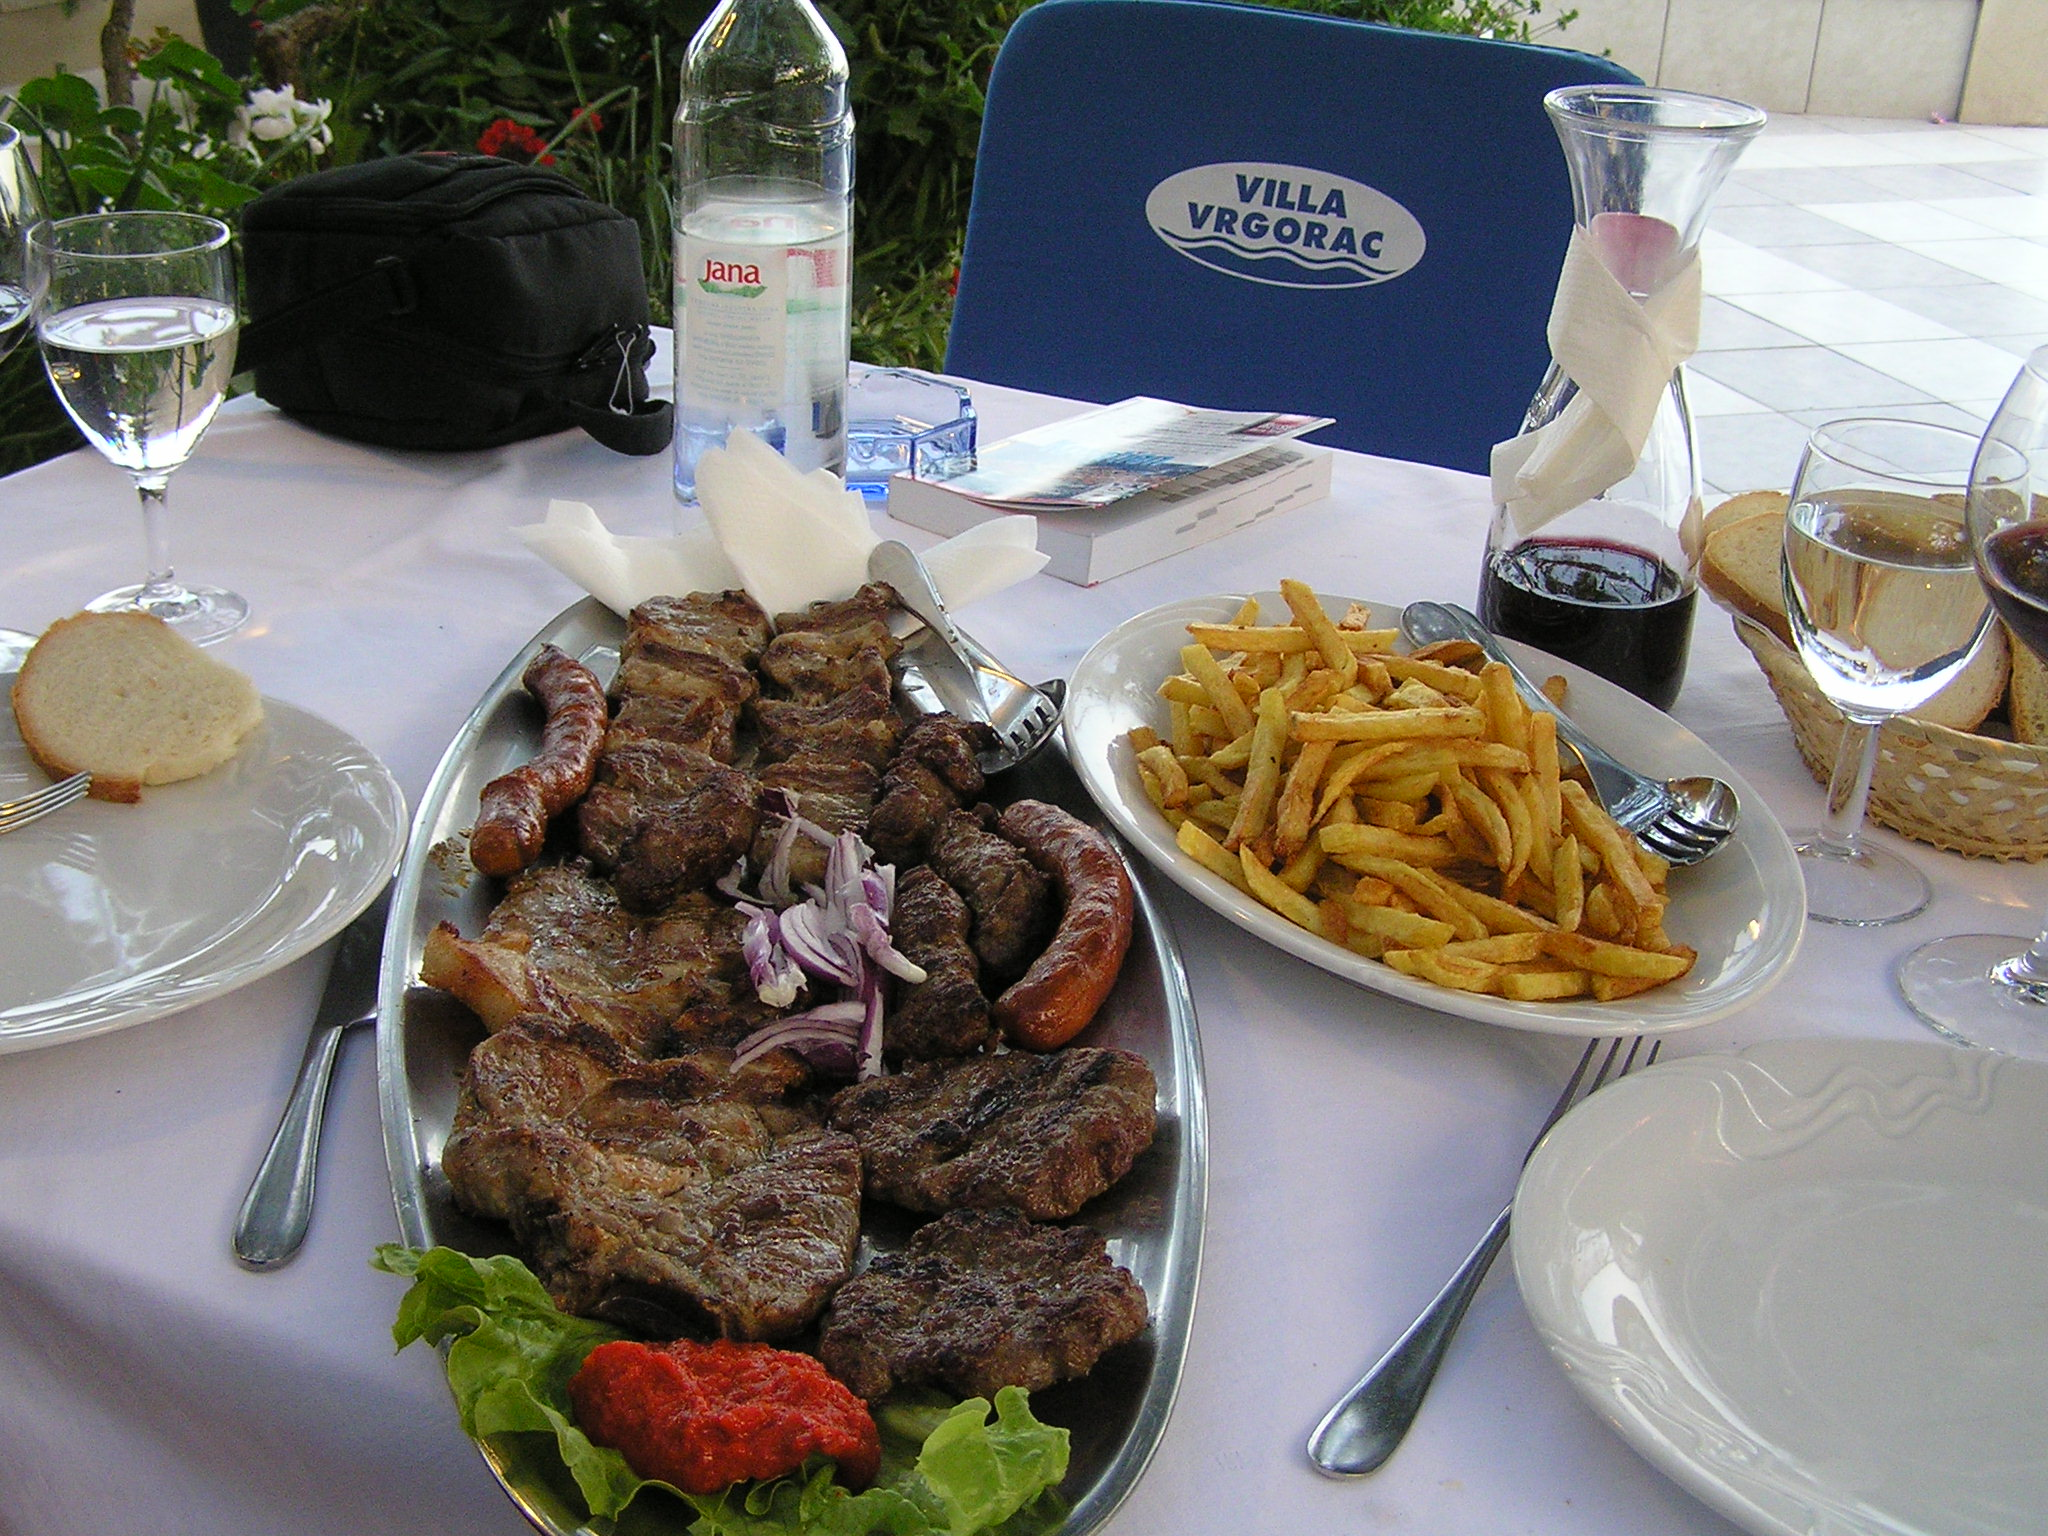 Plate for two in Croatia